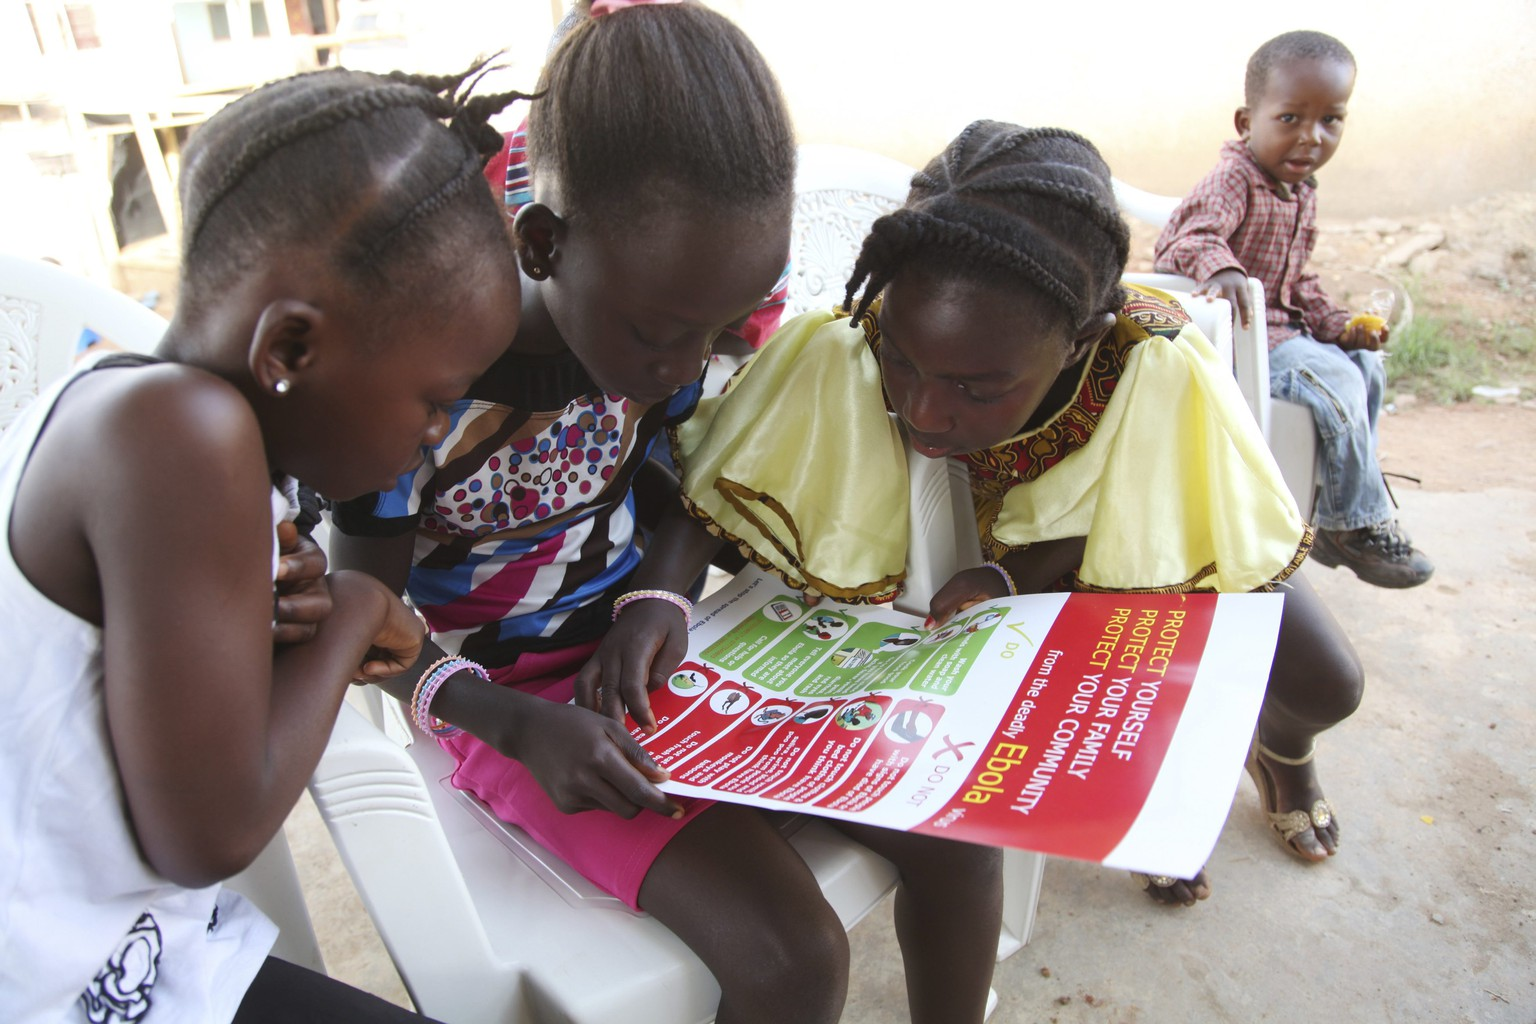 Girls look at a poster, distributed by UNICEF, bearing information on and illustrations of best practices that help prevent the spread of Ebola virus disease (EVD), in the city of Voinjama, in Lofa County, Liberia in this April 2014 UNICEF handout photo.  As of July 27, 2014, a total of 1,323 cases, including 729 deaths, had been attributed to EVD in the four West African countries of Guinea, Liberia, Nigeria and Sierra Leone. Liberia has borne 329 of these cases, including 156 deaths.  REUTERS/Ahmed Jallanzo/UNICEF/Handout via Reuters  (LIBERIA - Tags: HEALTH) THIS IMAGE HAS BEEN SUPPLIED BY A THIRD PARTY. IT IS DISTRIBUTED, EXACTLY AS RECEIVED BY REUTERS, AS A SERVICE TO CLIENTS. FOR EDITORIAL USE ONLY. NOT FOR SALE FOR MARKETING OR ADVERTISING CAMPAIGNS. MANDATORY CREDIT